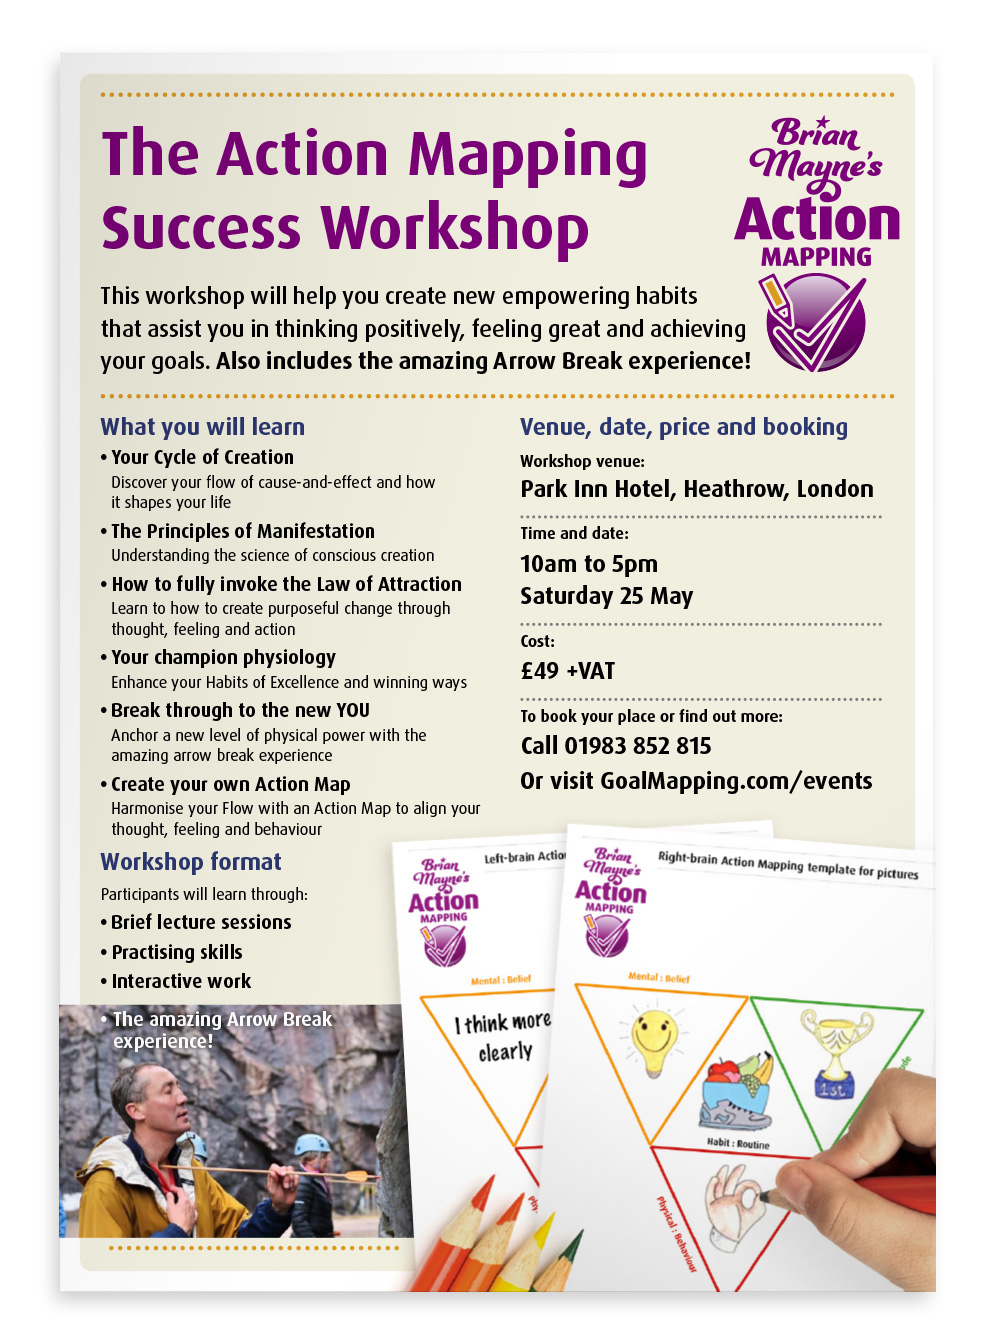 2-page flyer for an Action Mapping workshop